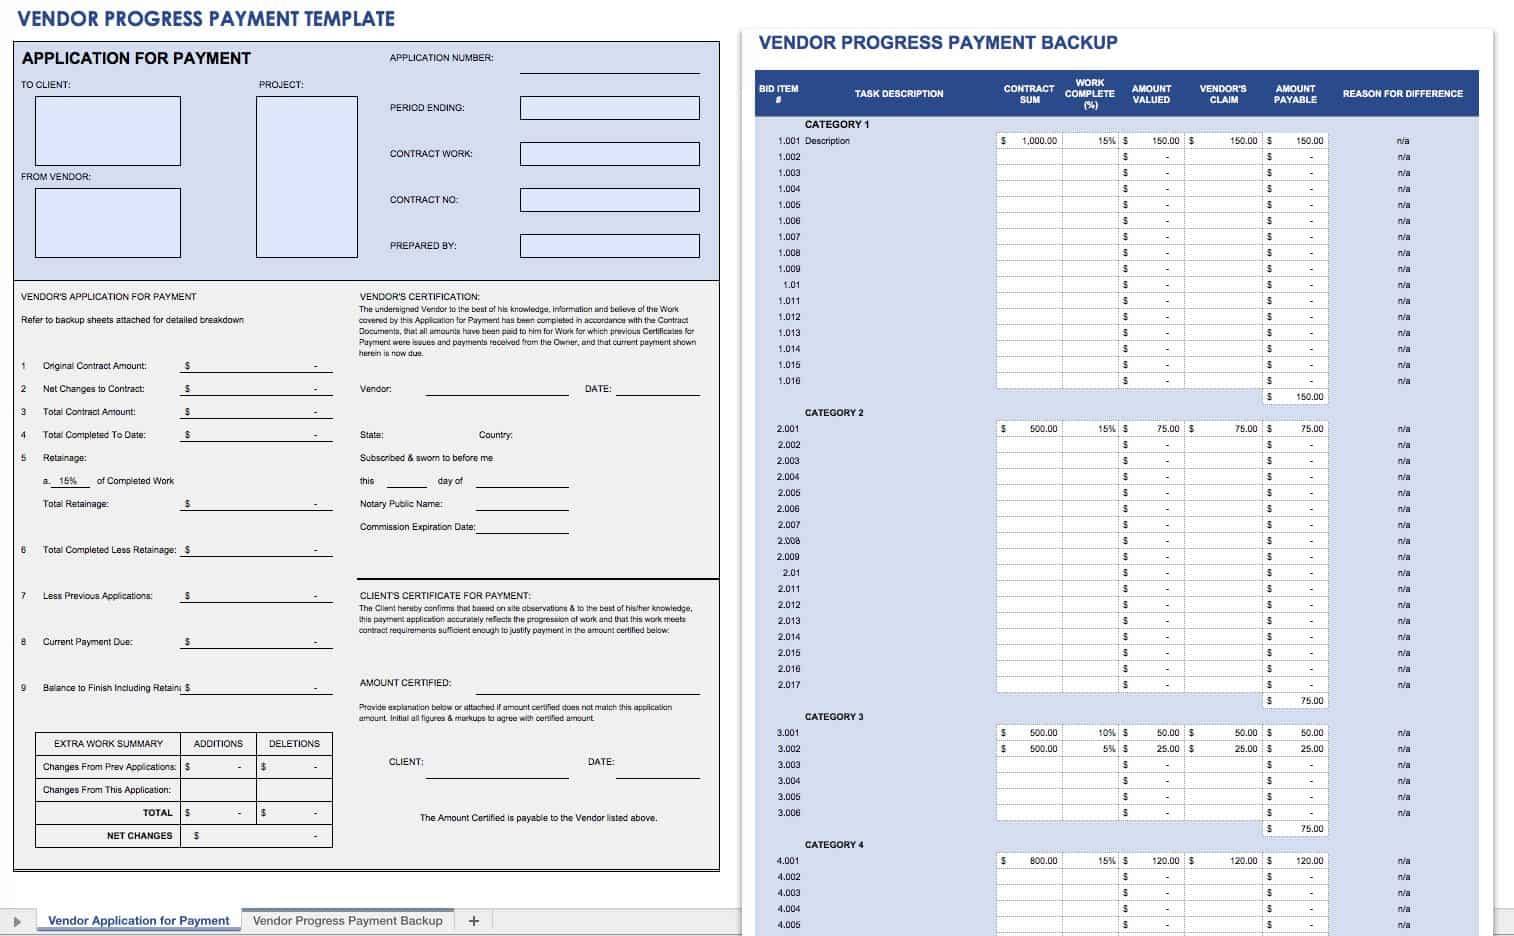 Vendor Progress Payment Template